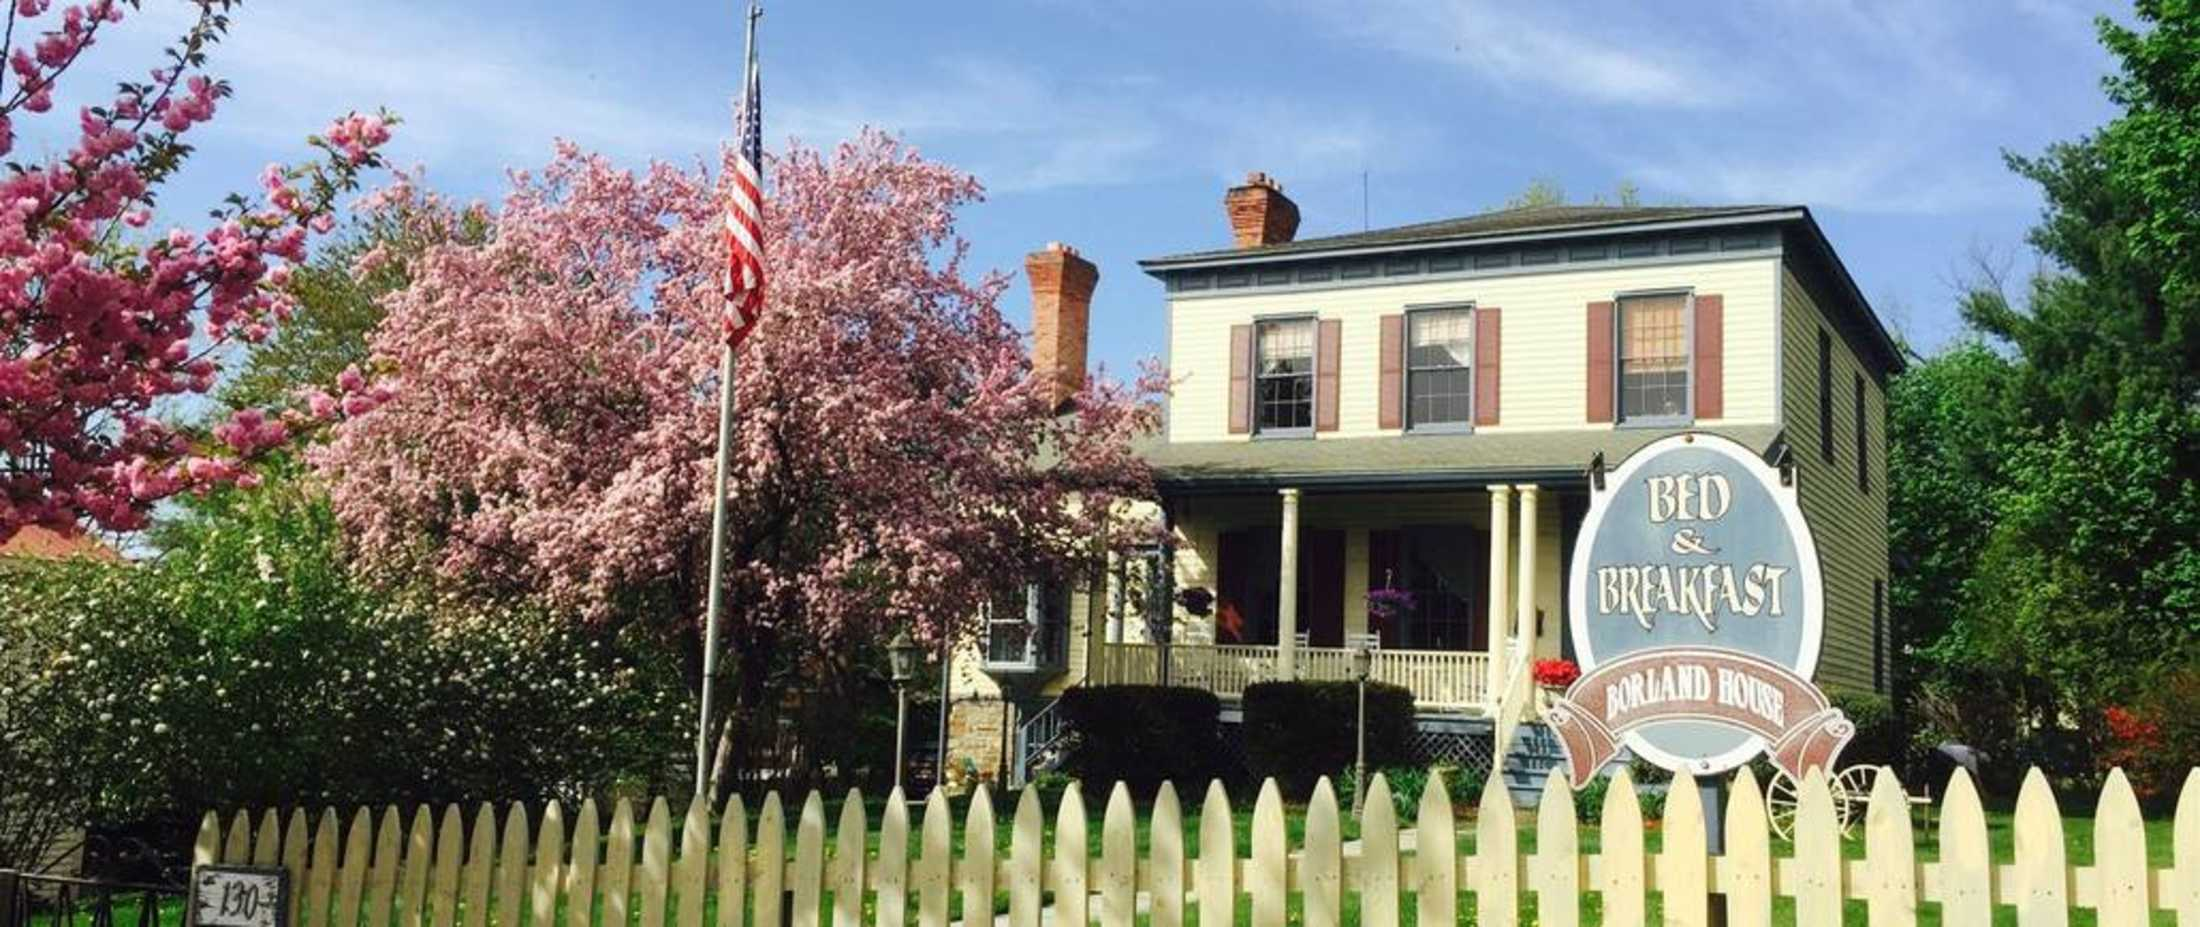 Visiting Montgomery NY? Here's Things to Do! | Borland House